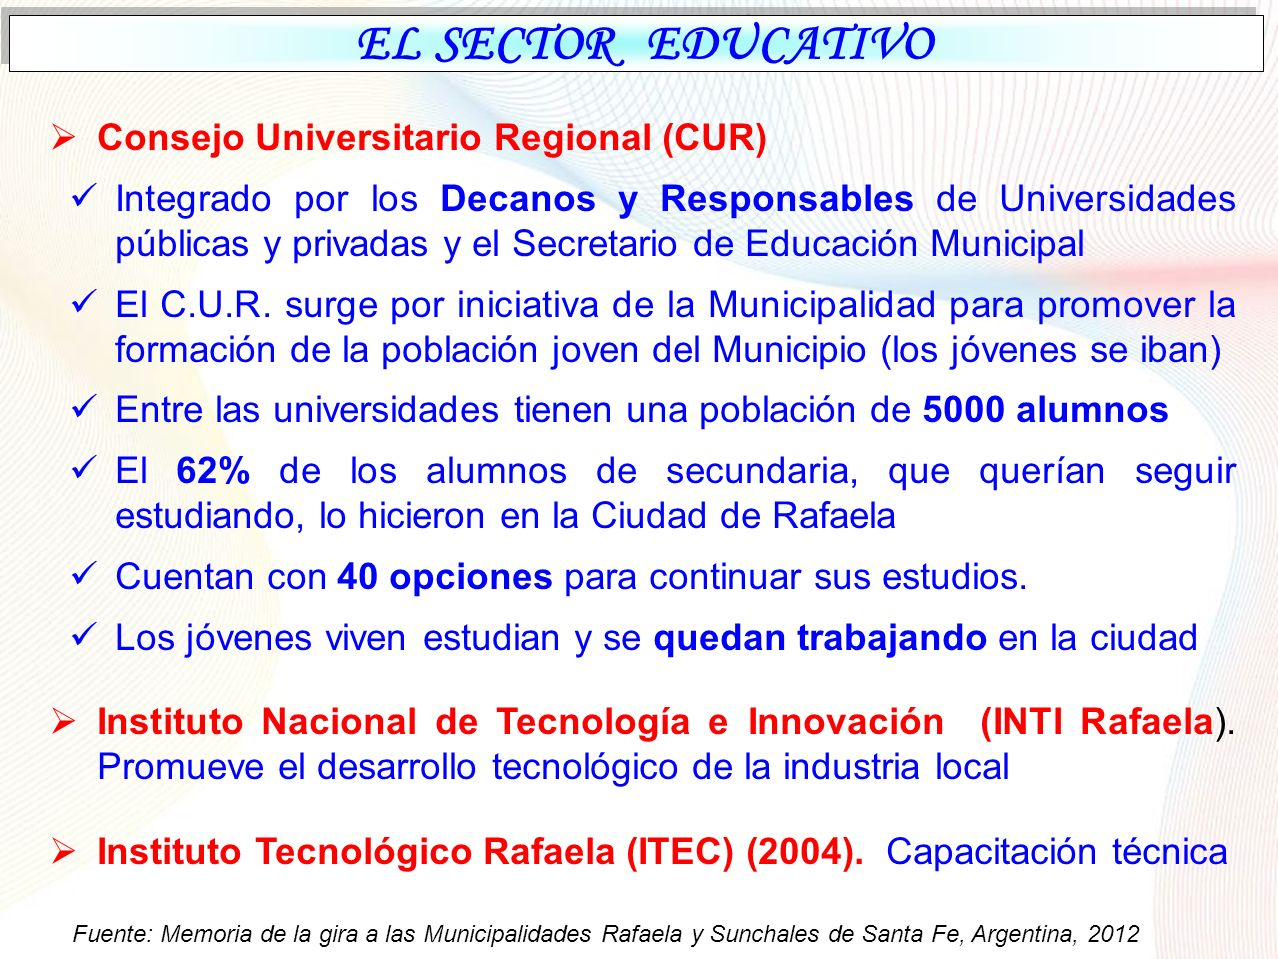 EL SECTOR EDUCATIVO Consejo Universitario Regional (CUR)